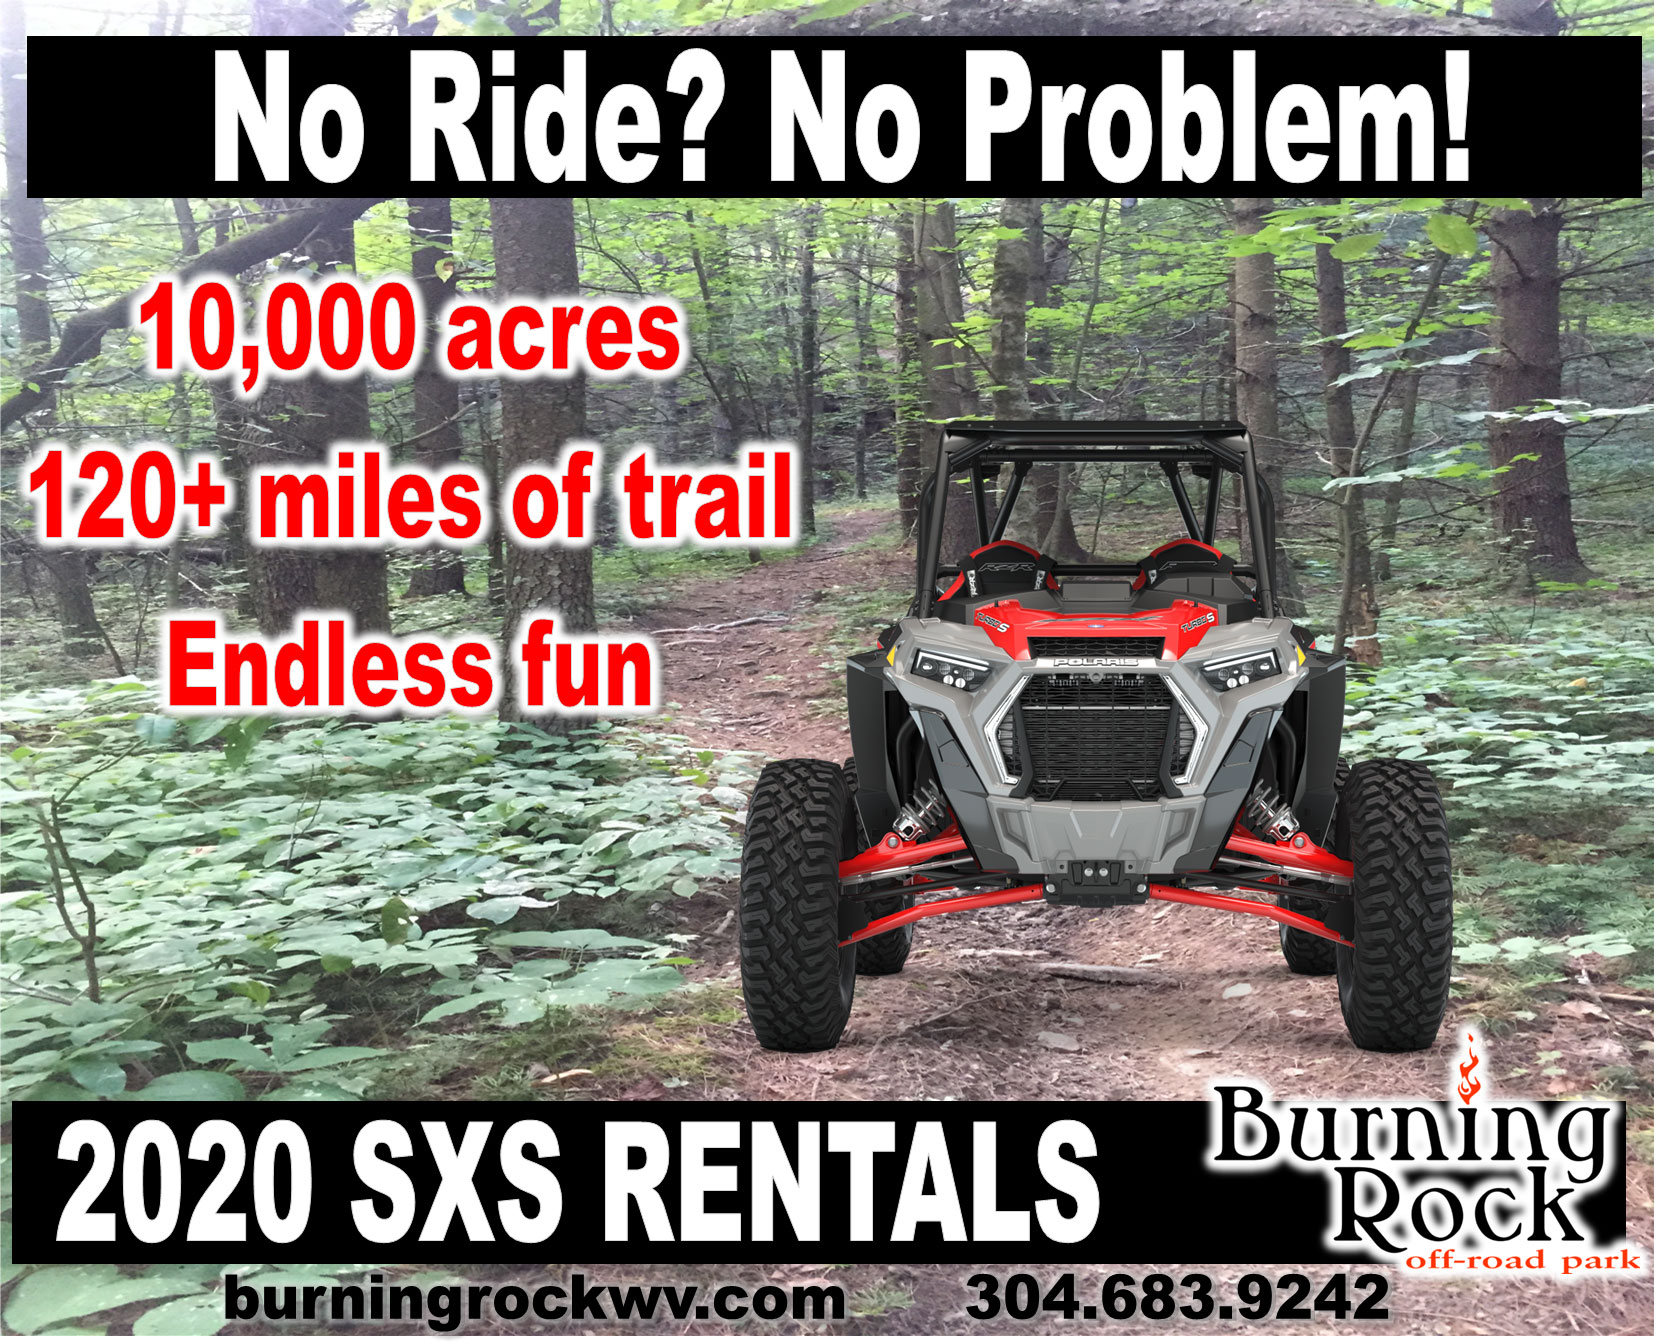 Rzr Rentals at Burning Rock